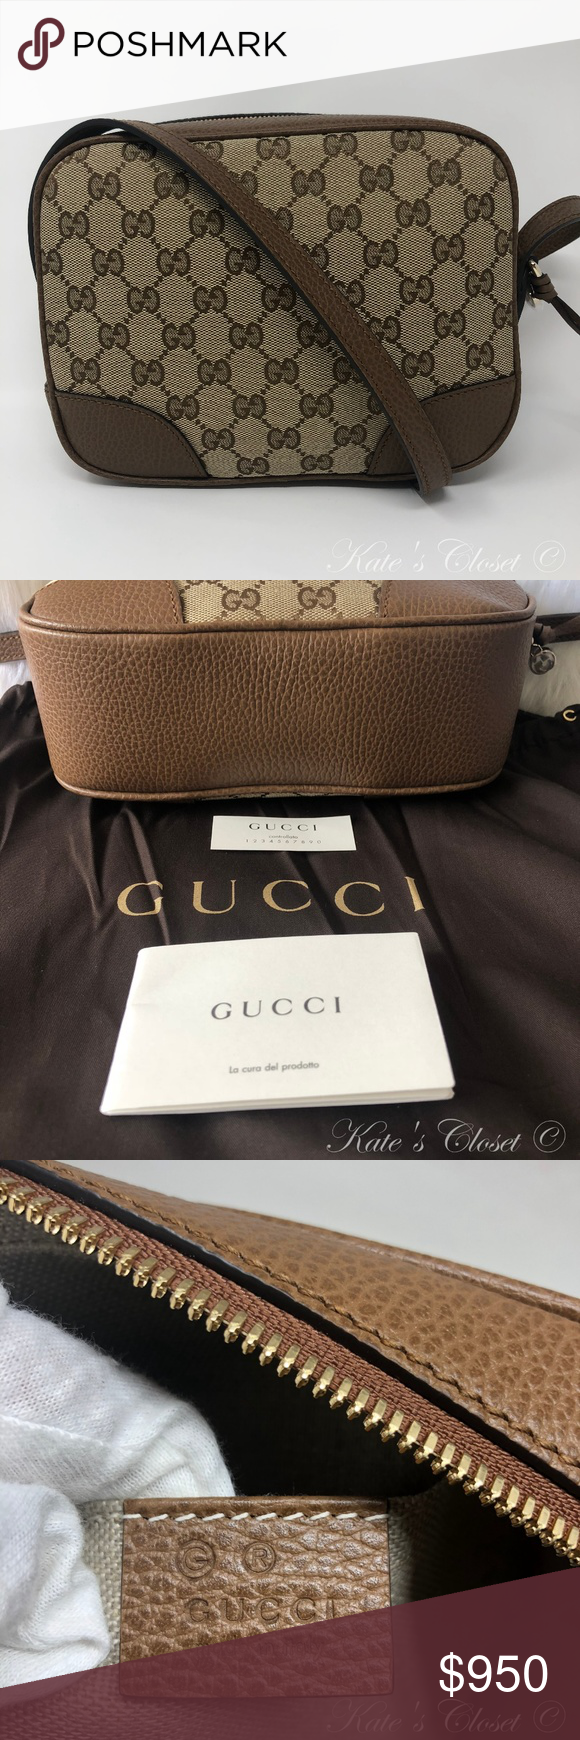 1781c5935989 NEW GUCCI GG Canvas Dollar Calf Crossbody 449413 Brand New. Never been  Used. Control# 449413-568024 Approx size: 8.5